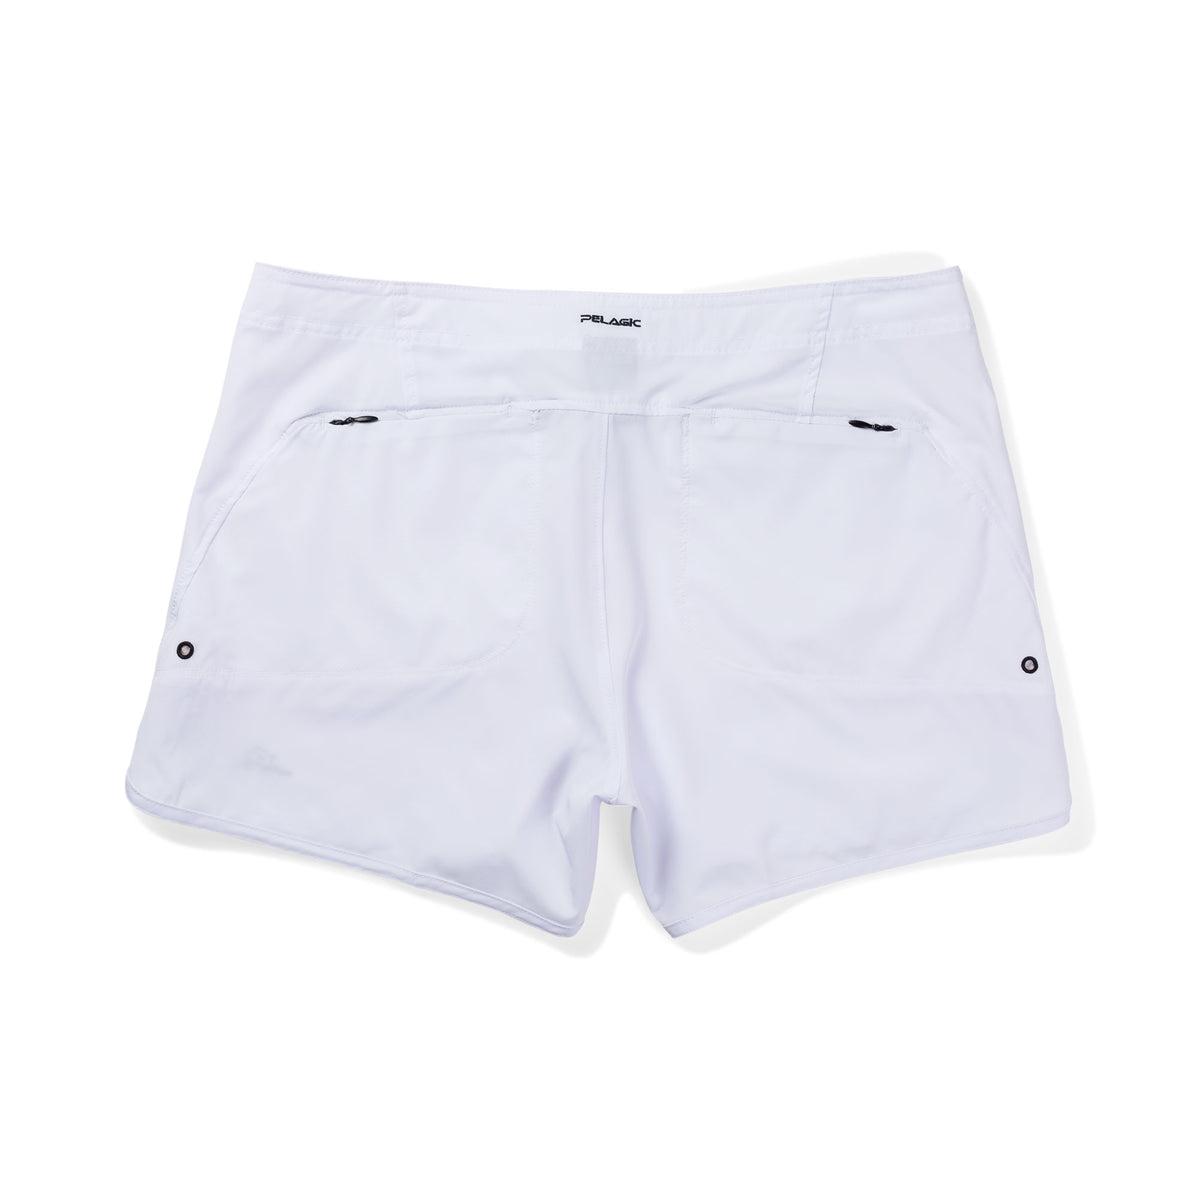 Moana Hybrid Fishing Shorts Big Image - 2